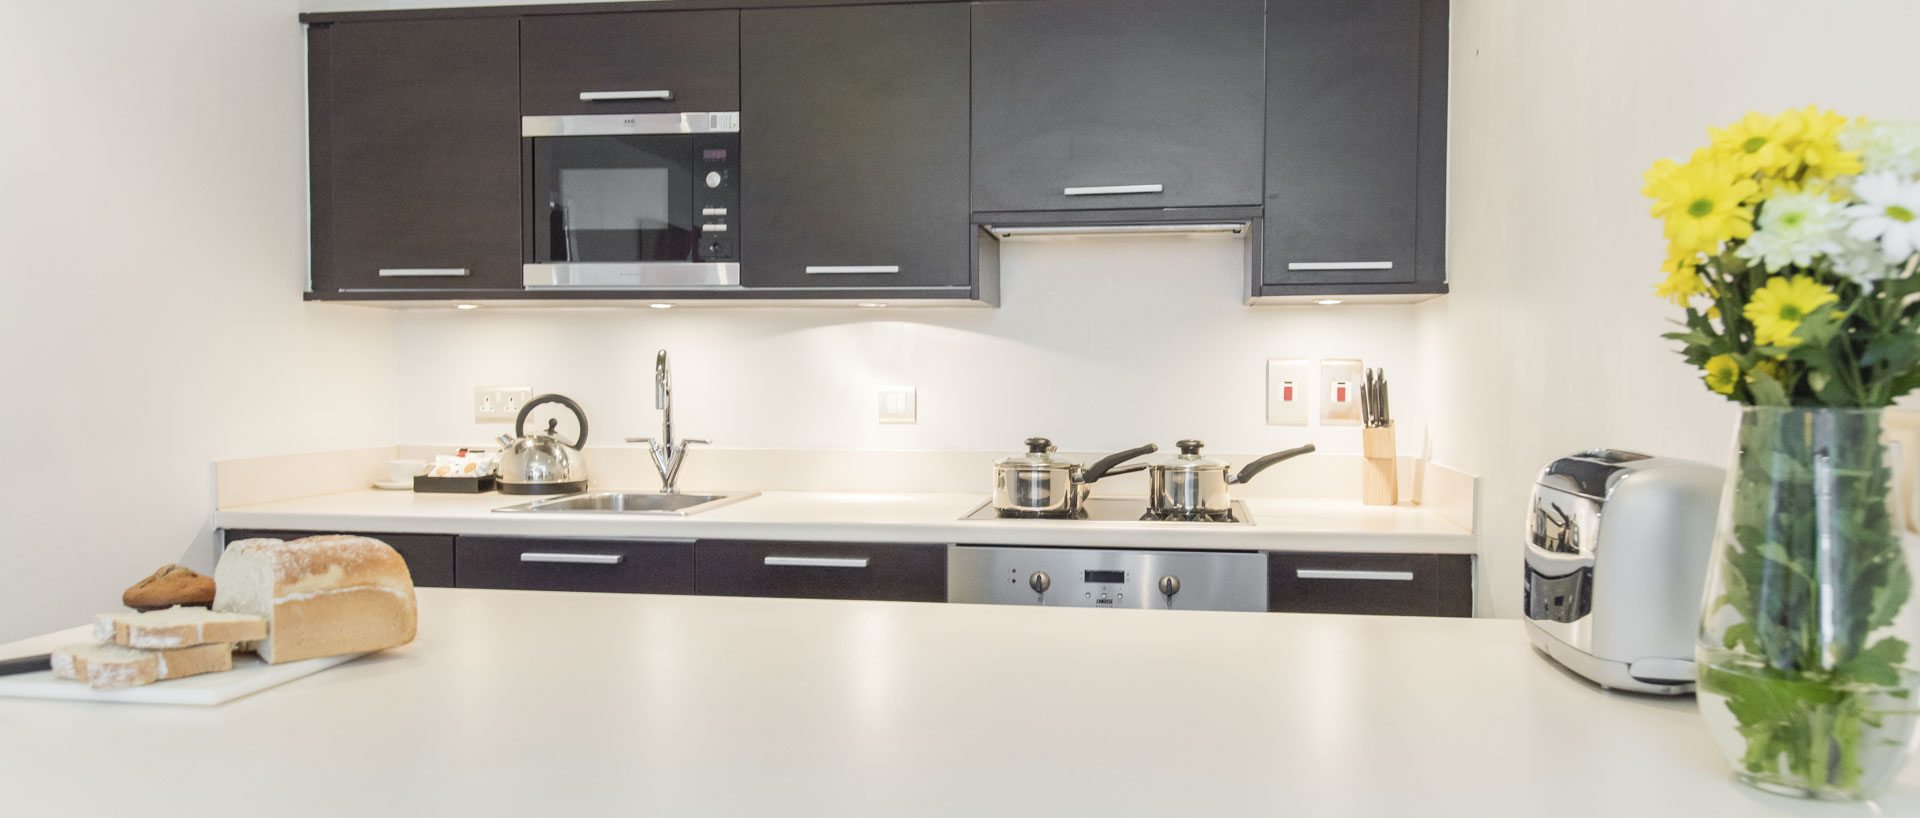 Modern fully equipped kitchen in PREMIER SUITES Liverpool serviced apartments